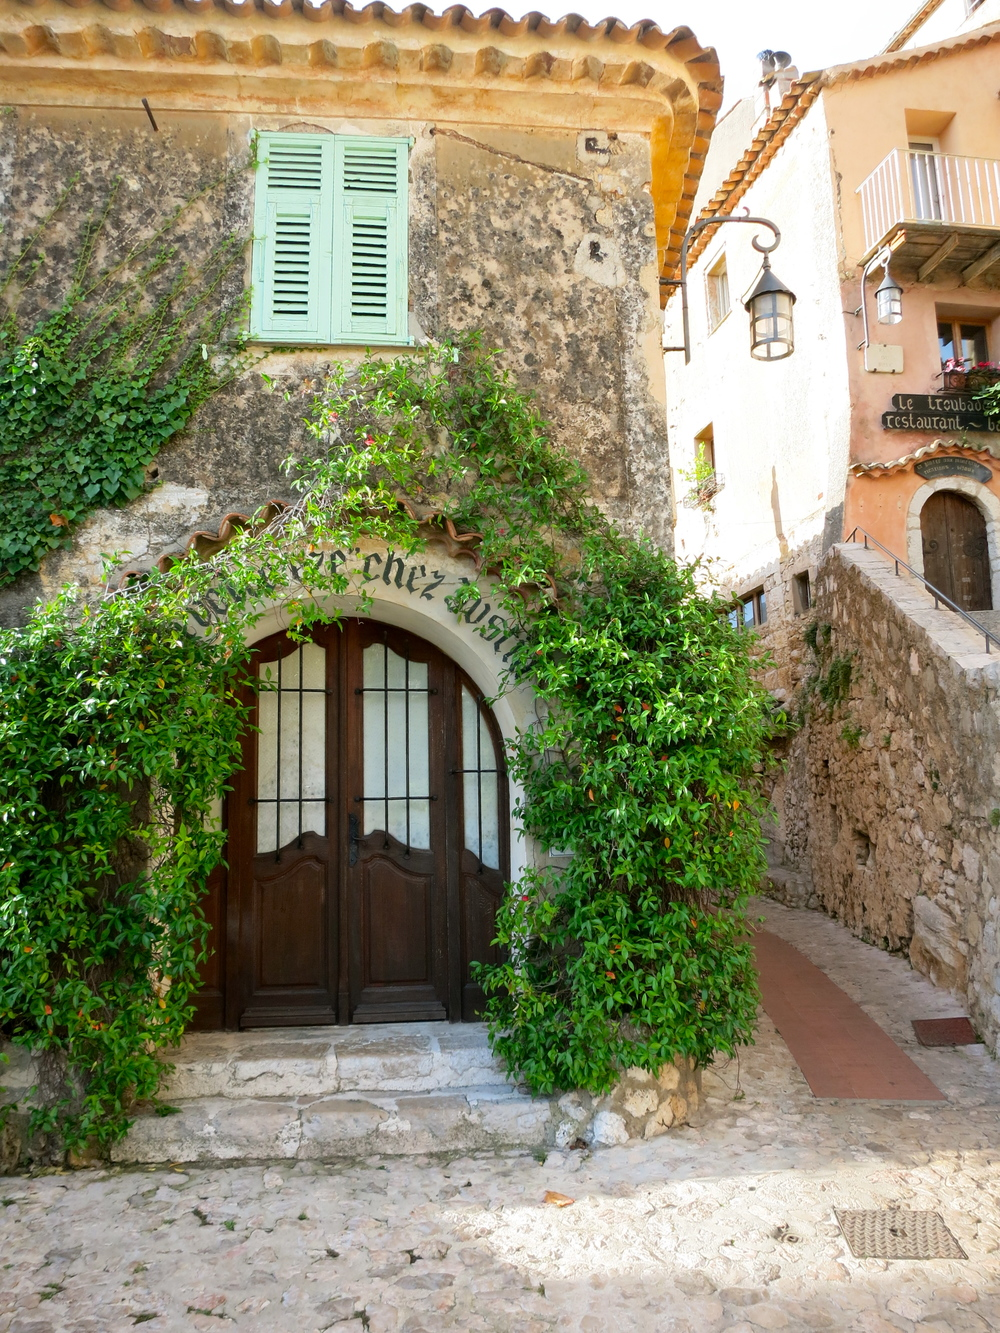 Charm abounds in Eze. © 2014 Gail Jessen